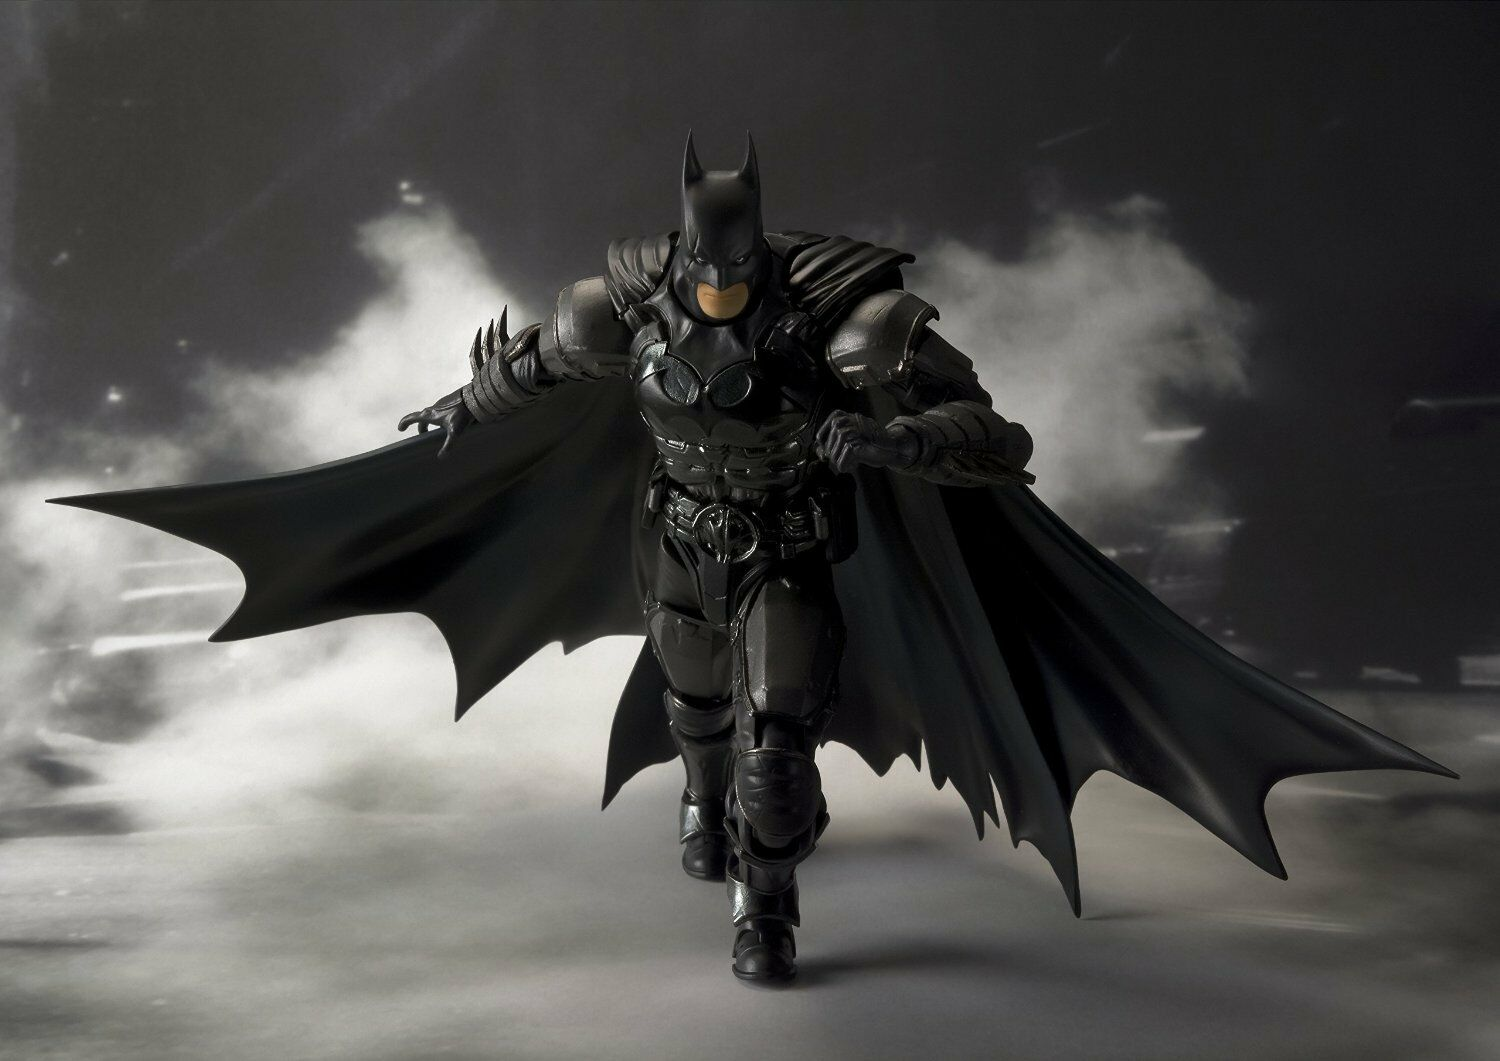 Hot S.H. Figuarts Batman Injustice Ver Toys  Dark Knight D C Medicom Takara